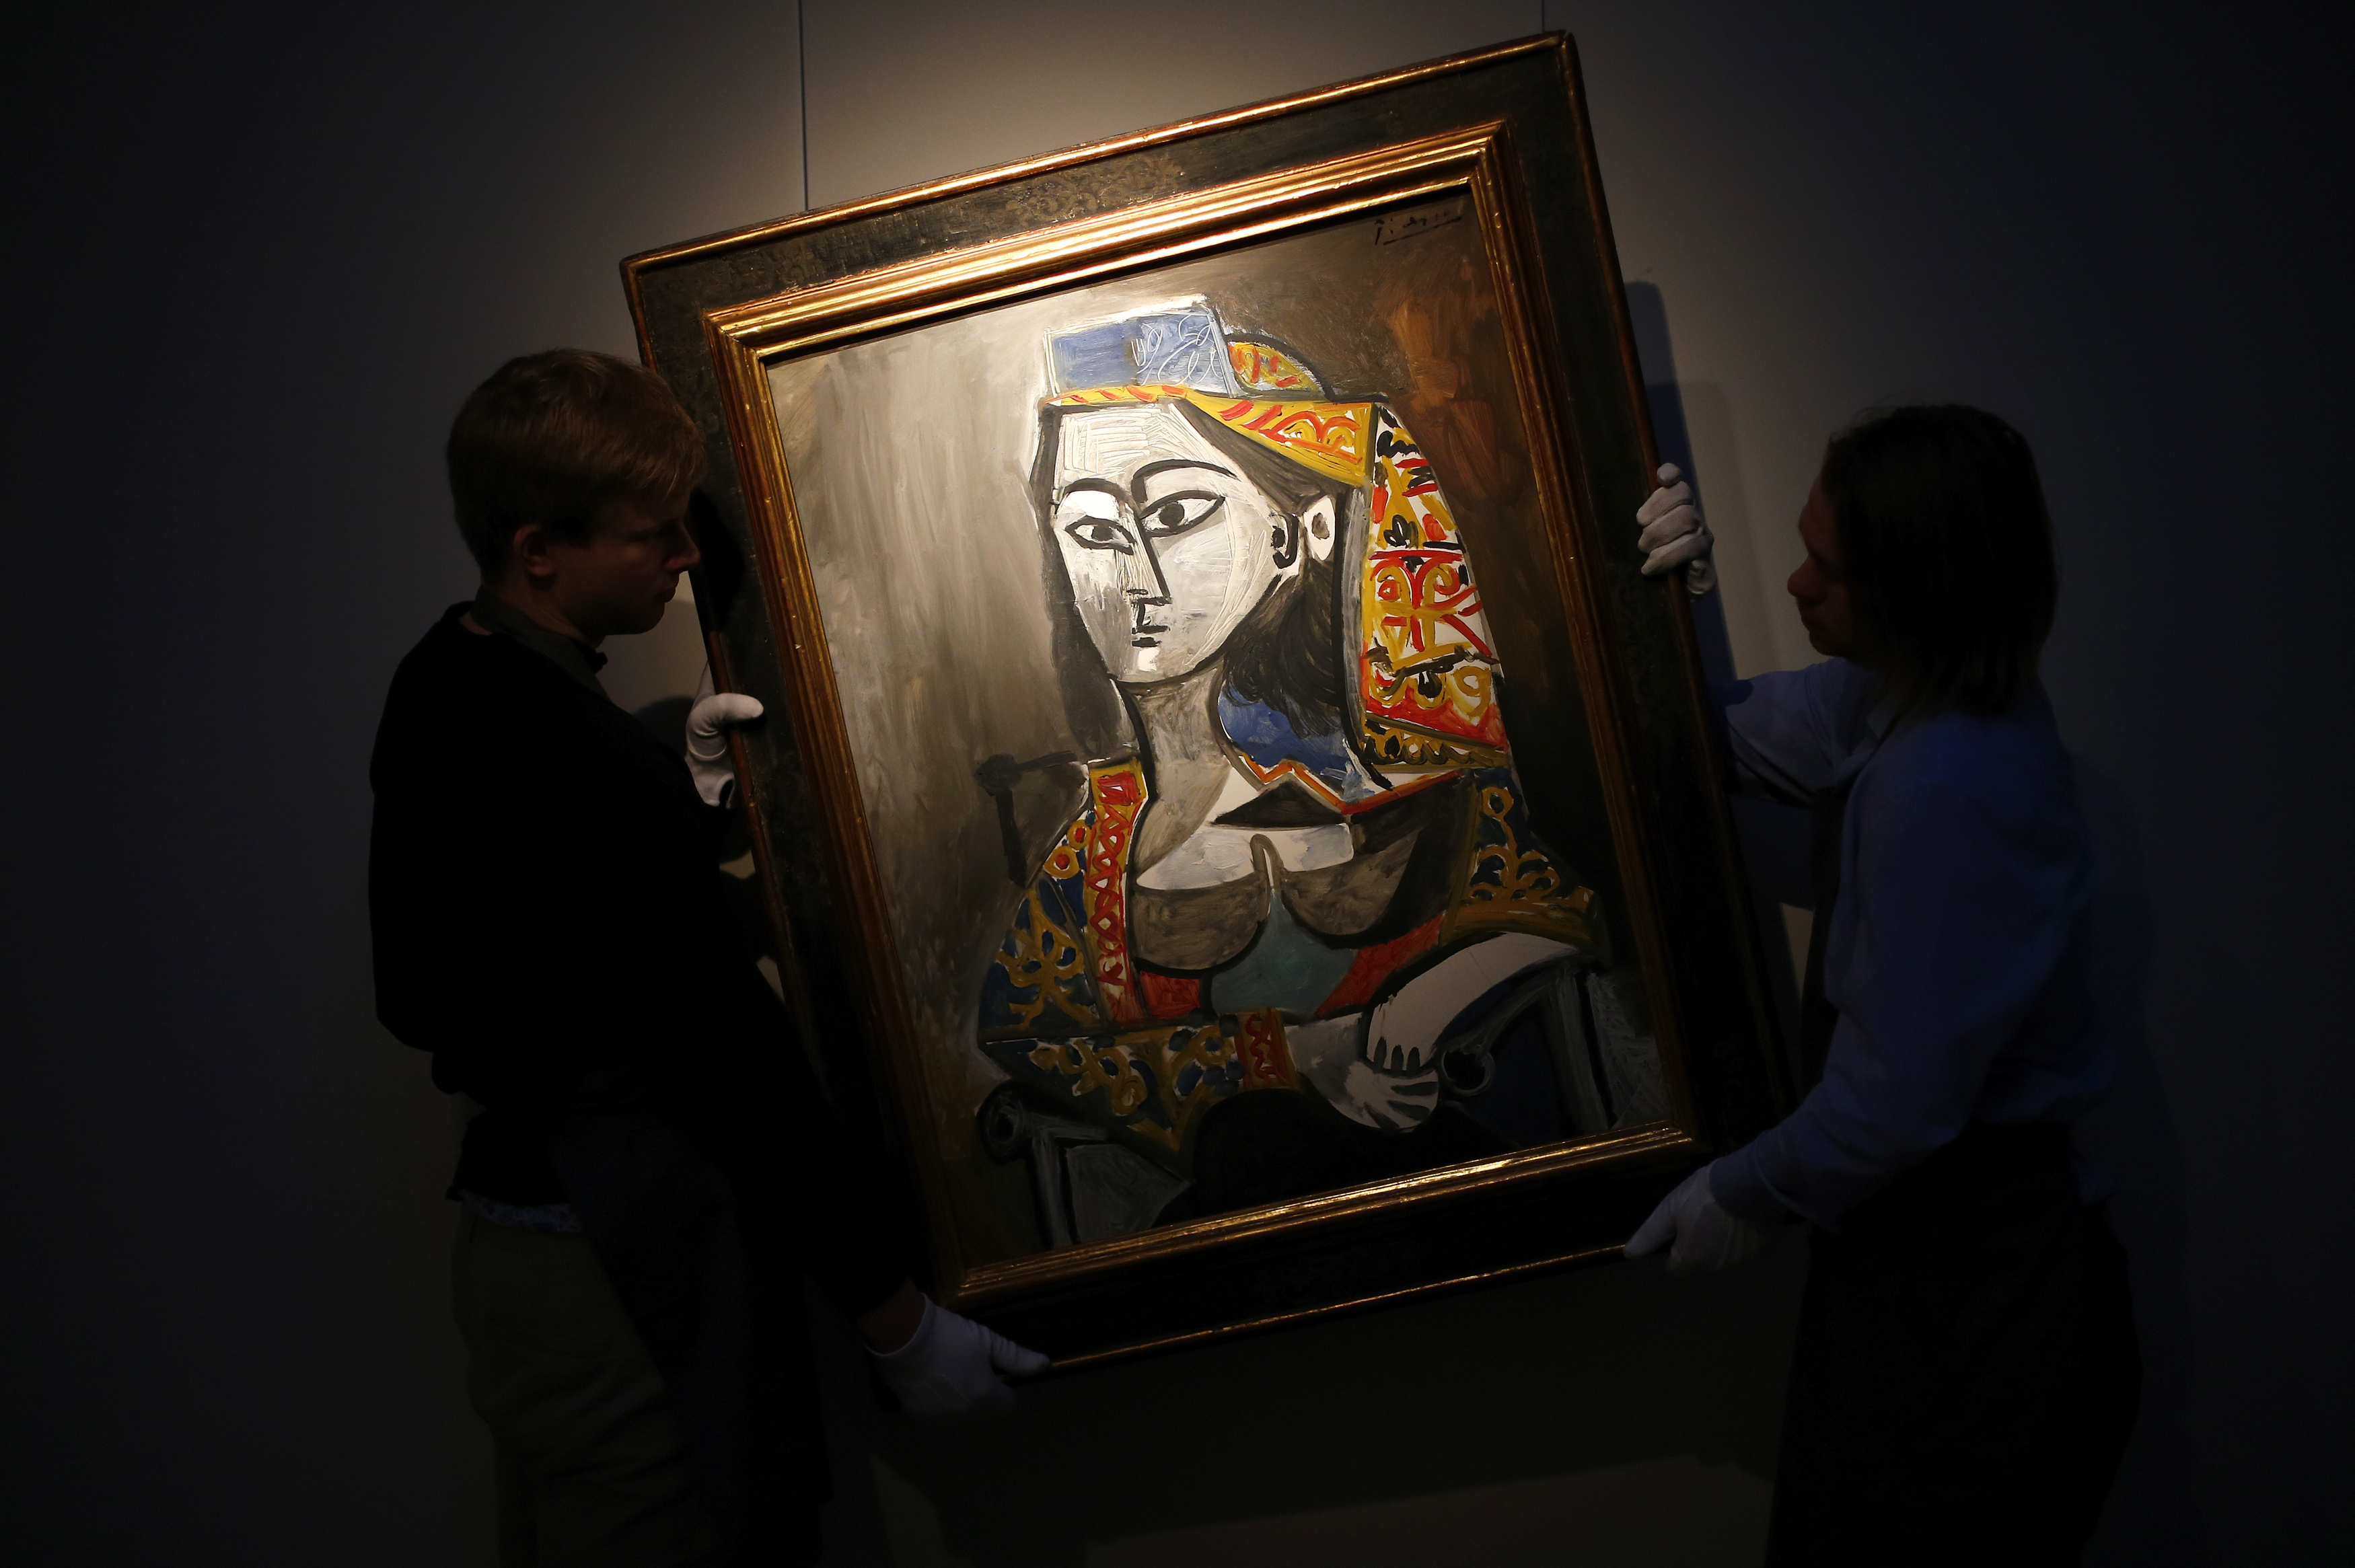 "Workers pose with Pablo Picasso's ""Femme au costume turc dans un fauteuil"", a portrait of his lover Jacqueline Roque painted in 1955, at Christie's auction house in London January 13, 2014. The artwork is expected to fetch 15-20 million GB pounds (U.S. $24.6-32.9 million) when it goes under the hammer at Christie's impressionist and modern art evening sale in London on February 4.  REUTERS/Andrew Winning  (BRITAIN - Tags: ENTERTAINMENT BUSINESS SOCIETY) - RTX17CAN"